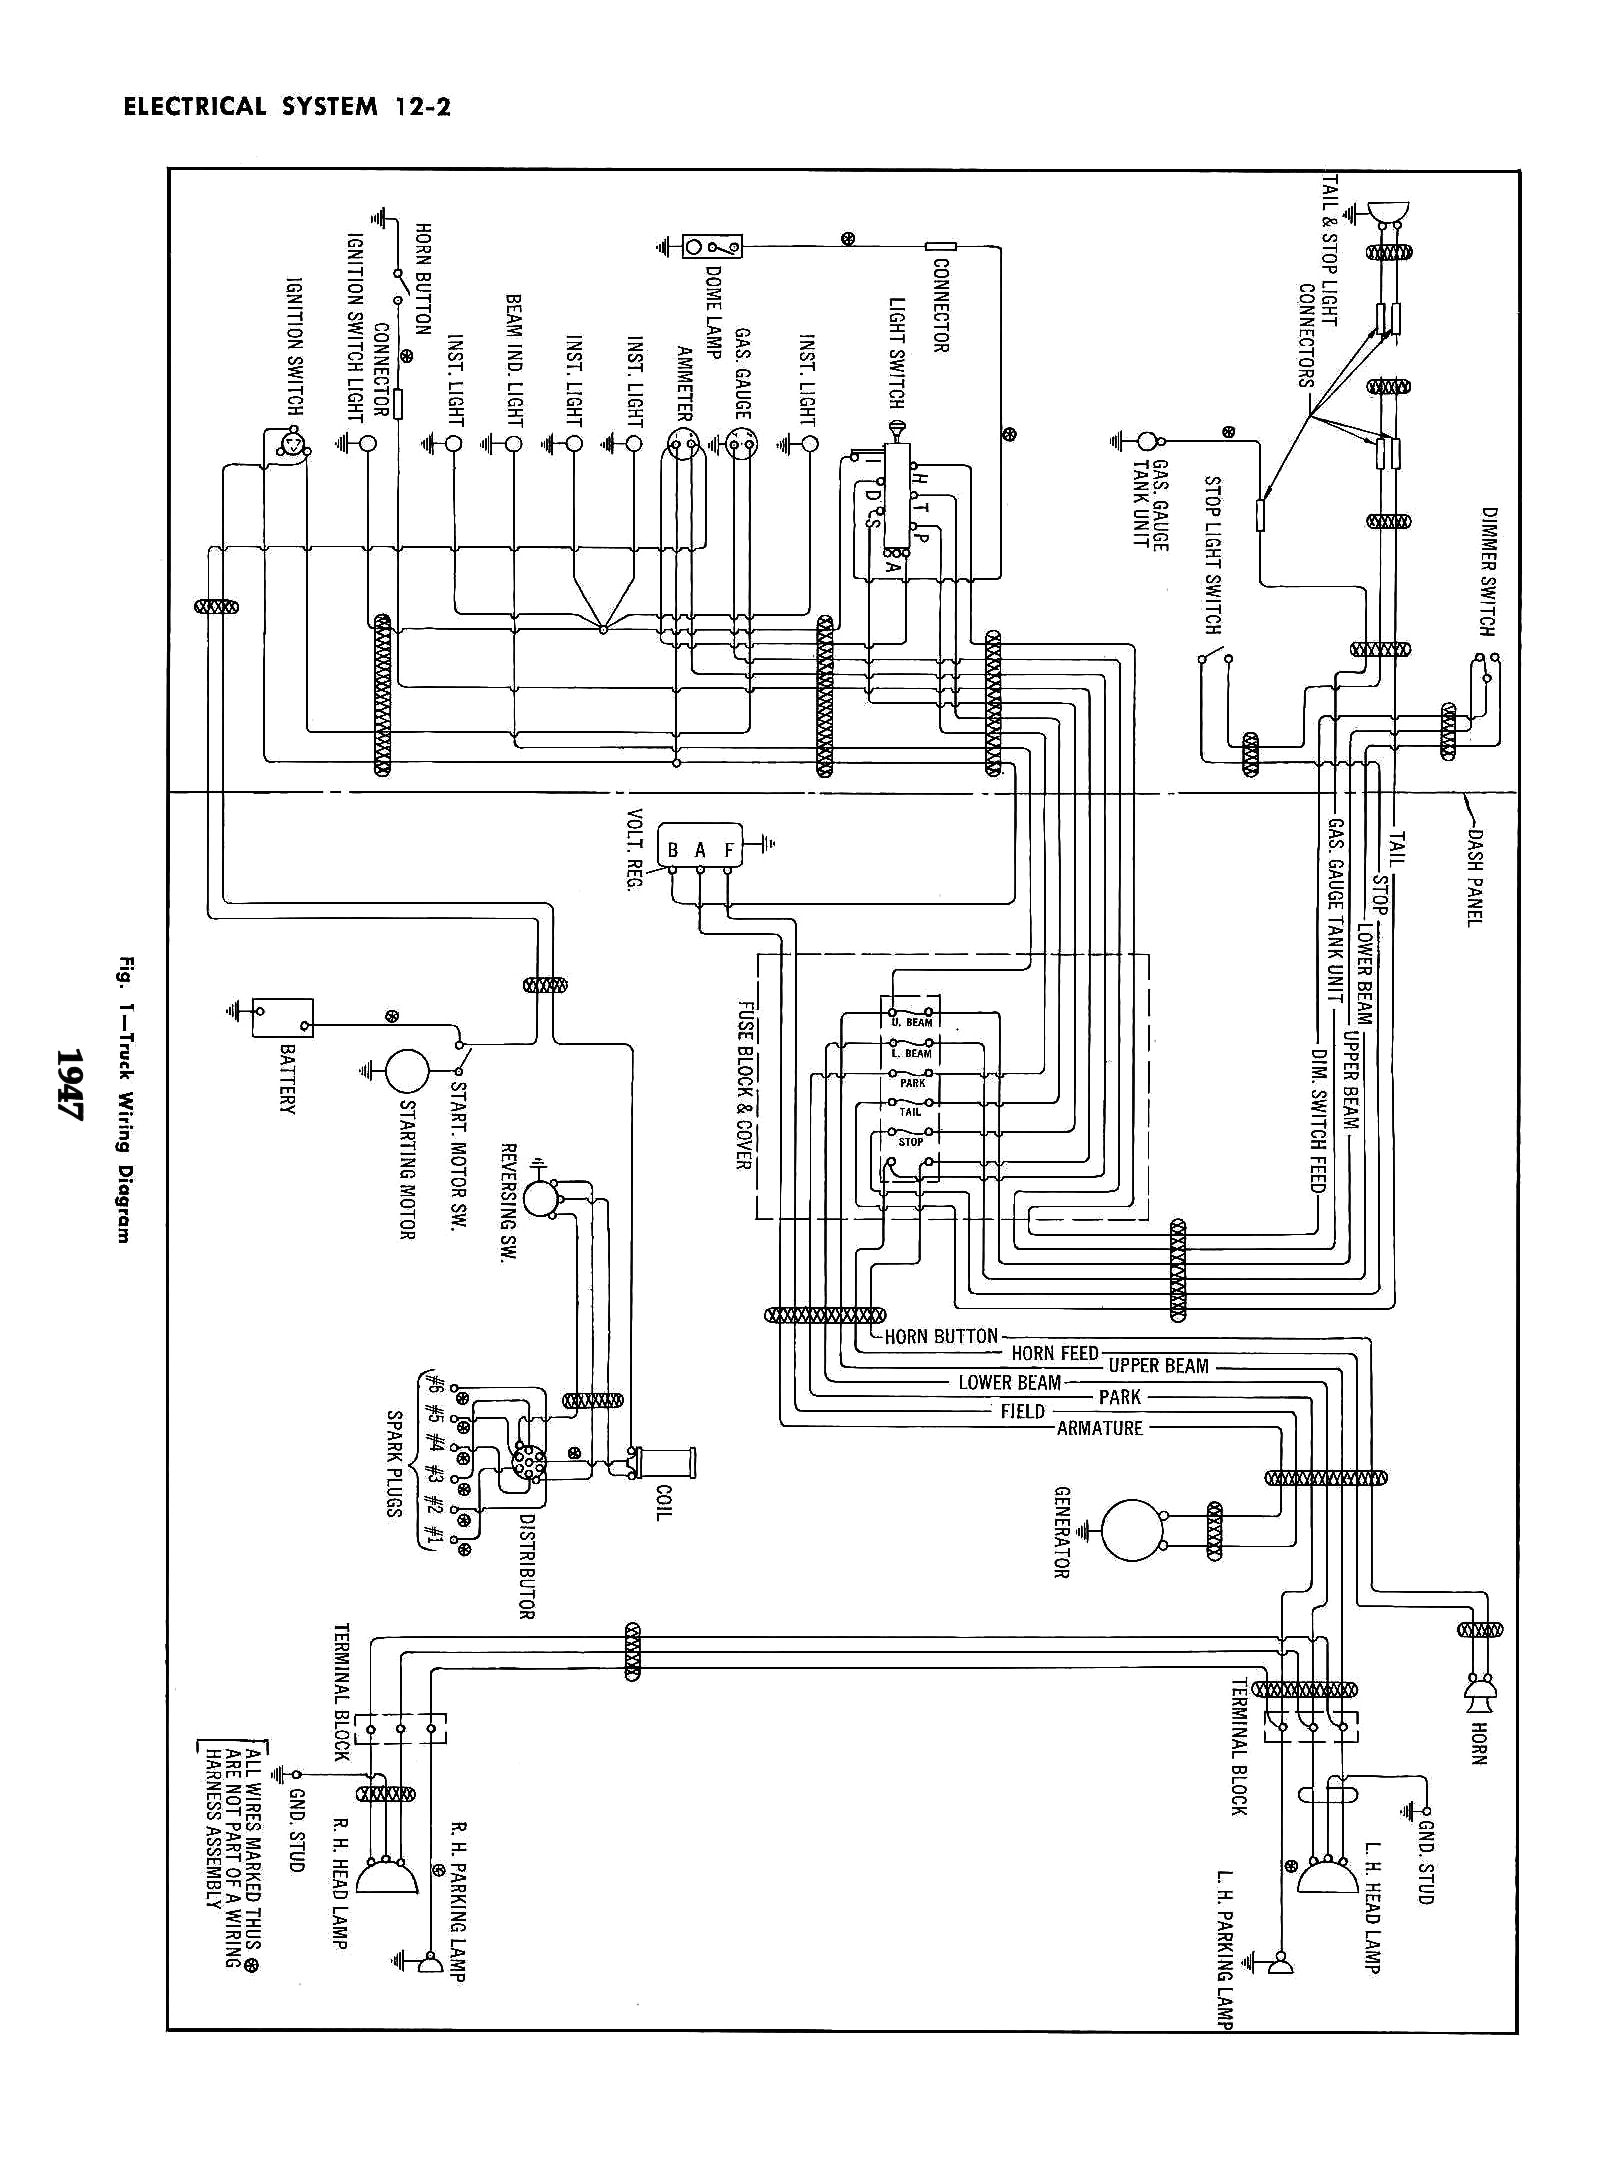 47ctsm1202 chevy wiring diagrams Wiring Schematics for Johnson Outboards at suagrazia.org